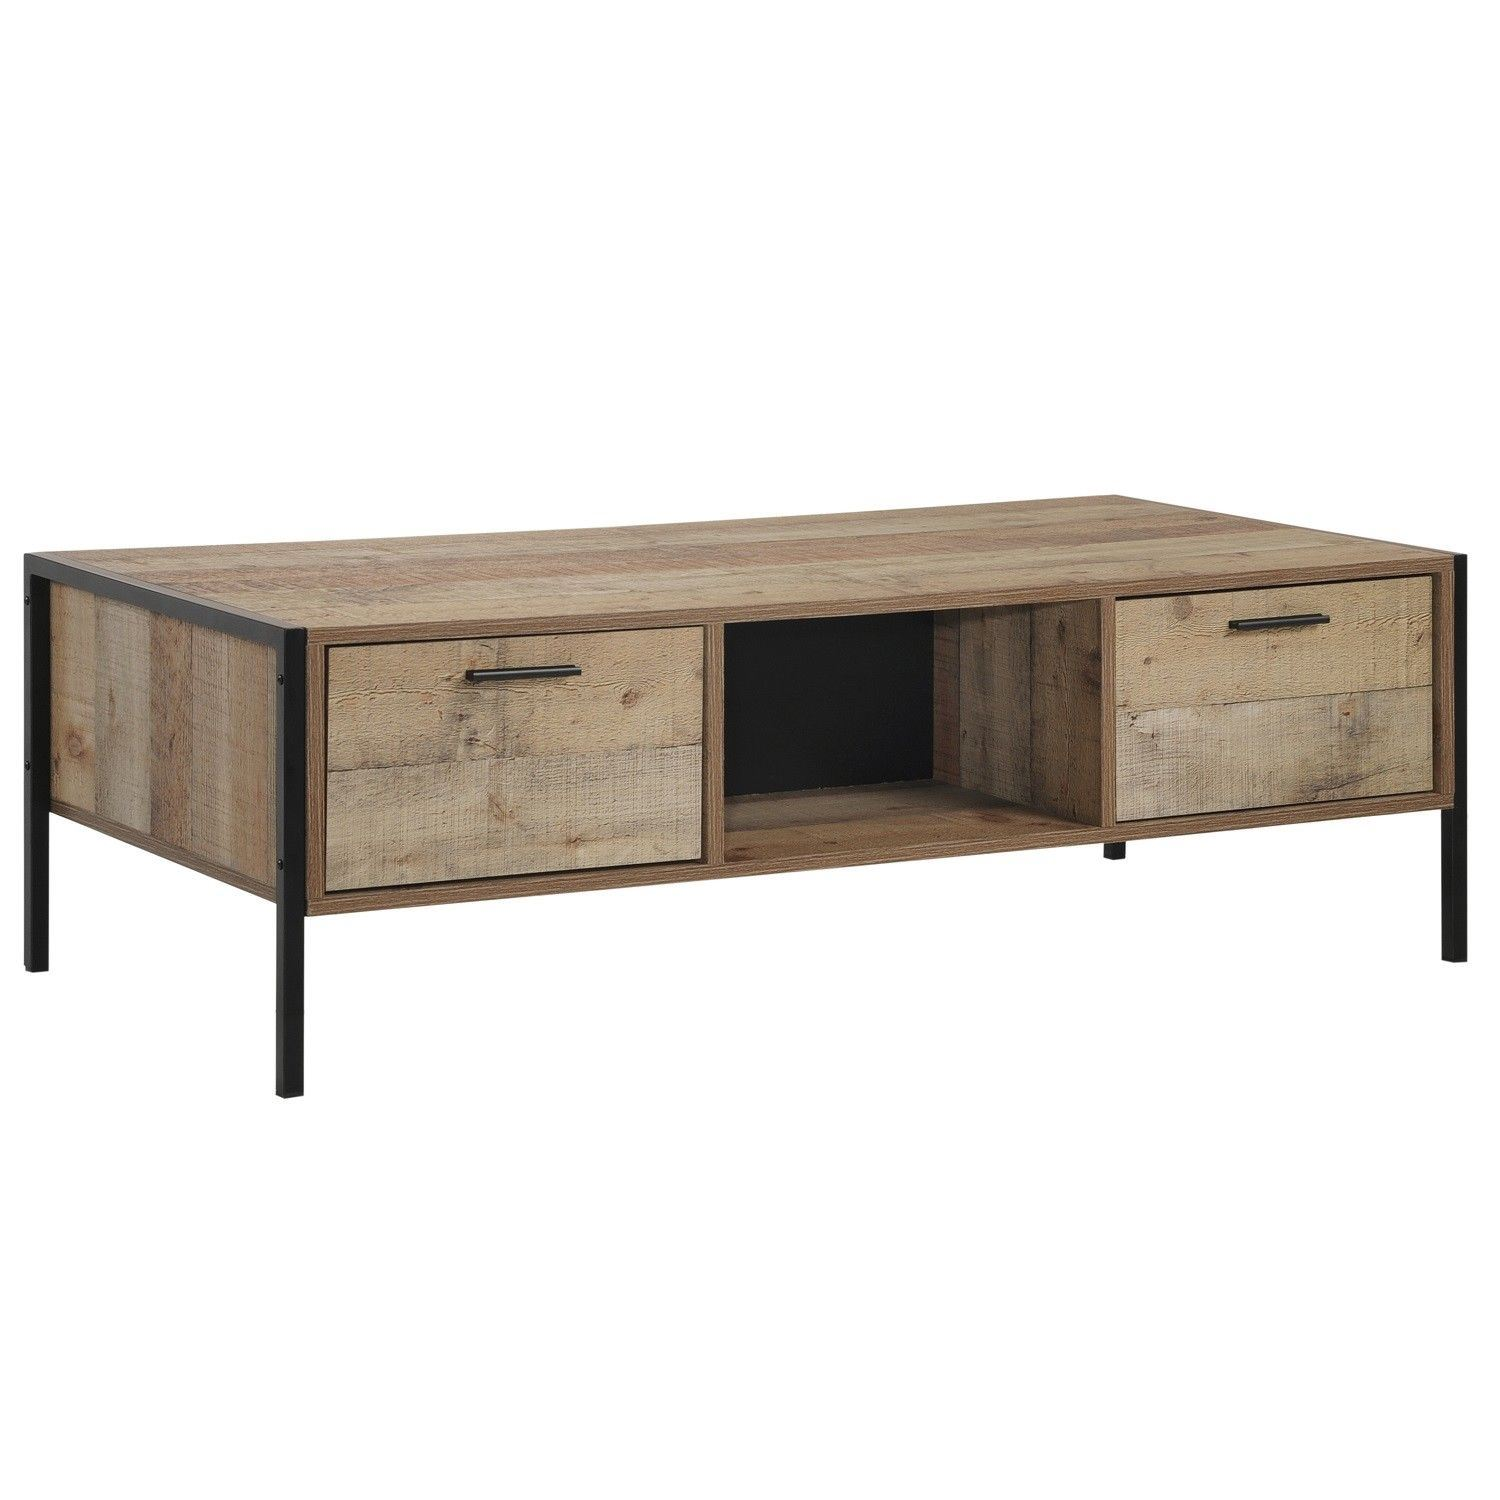 Stretton Coffee Table With 4 Drawers Rustic Oak Effect